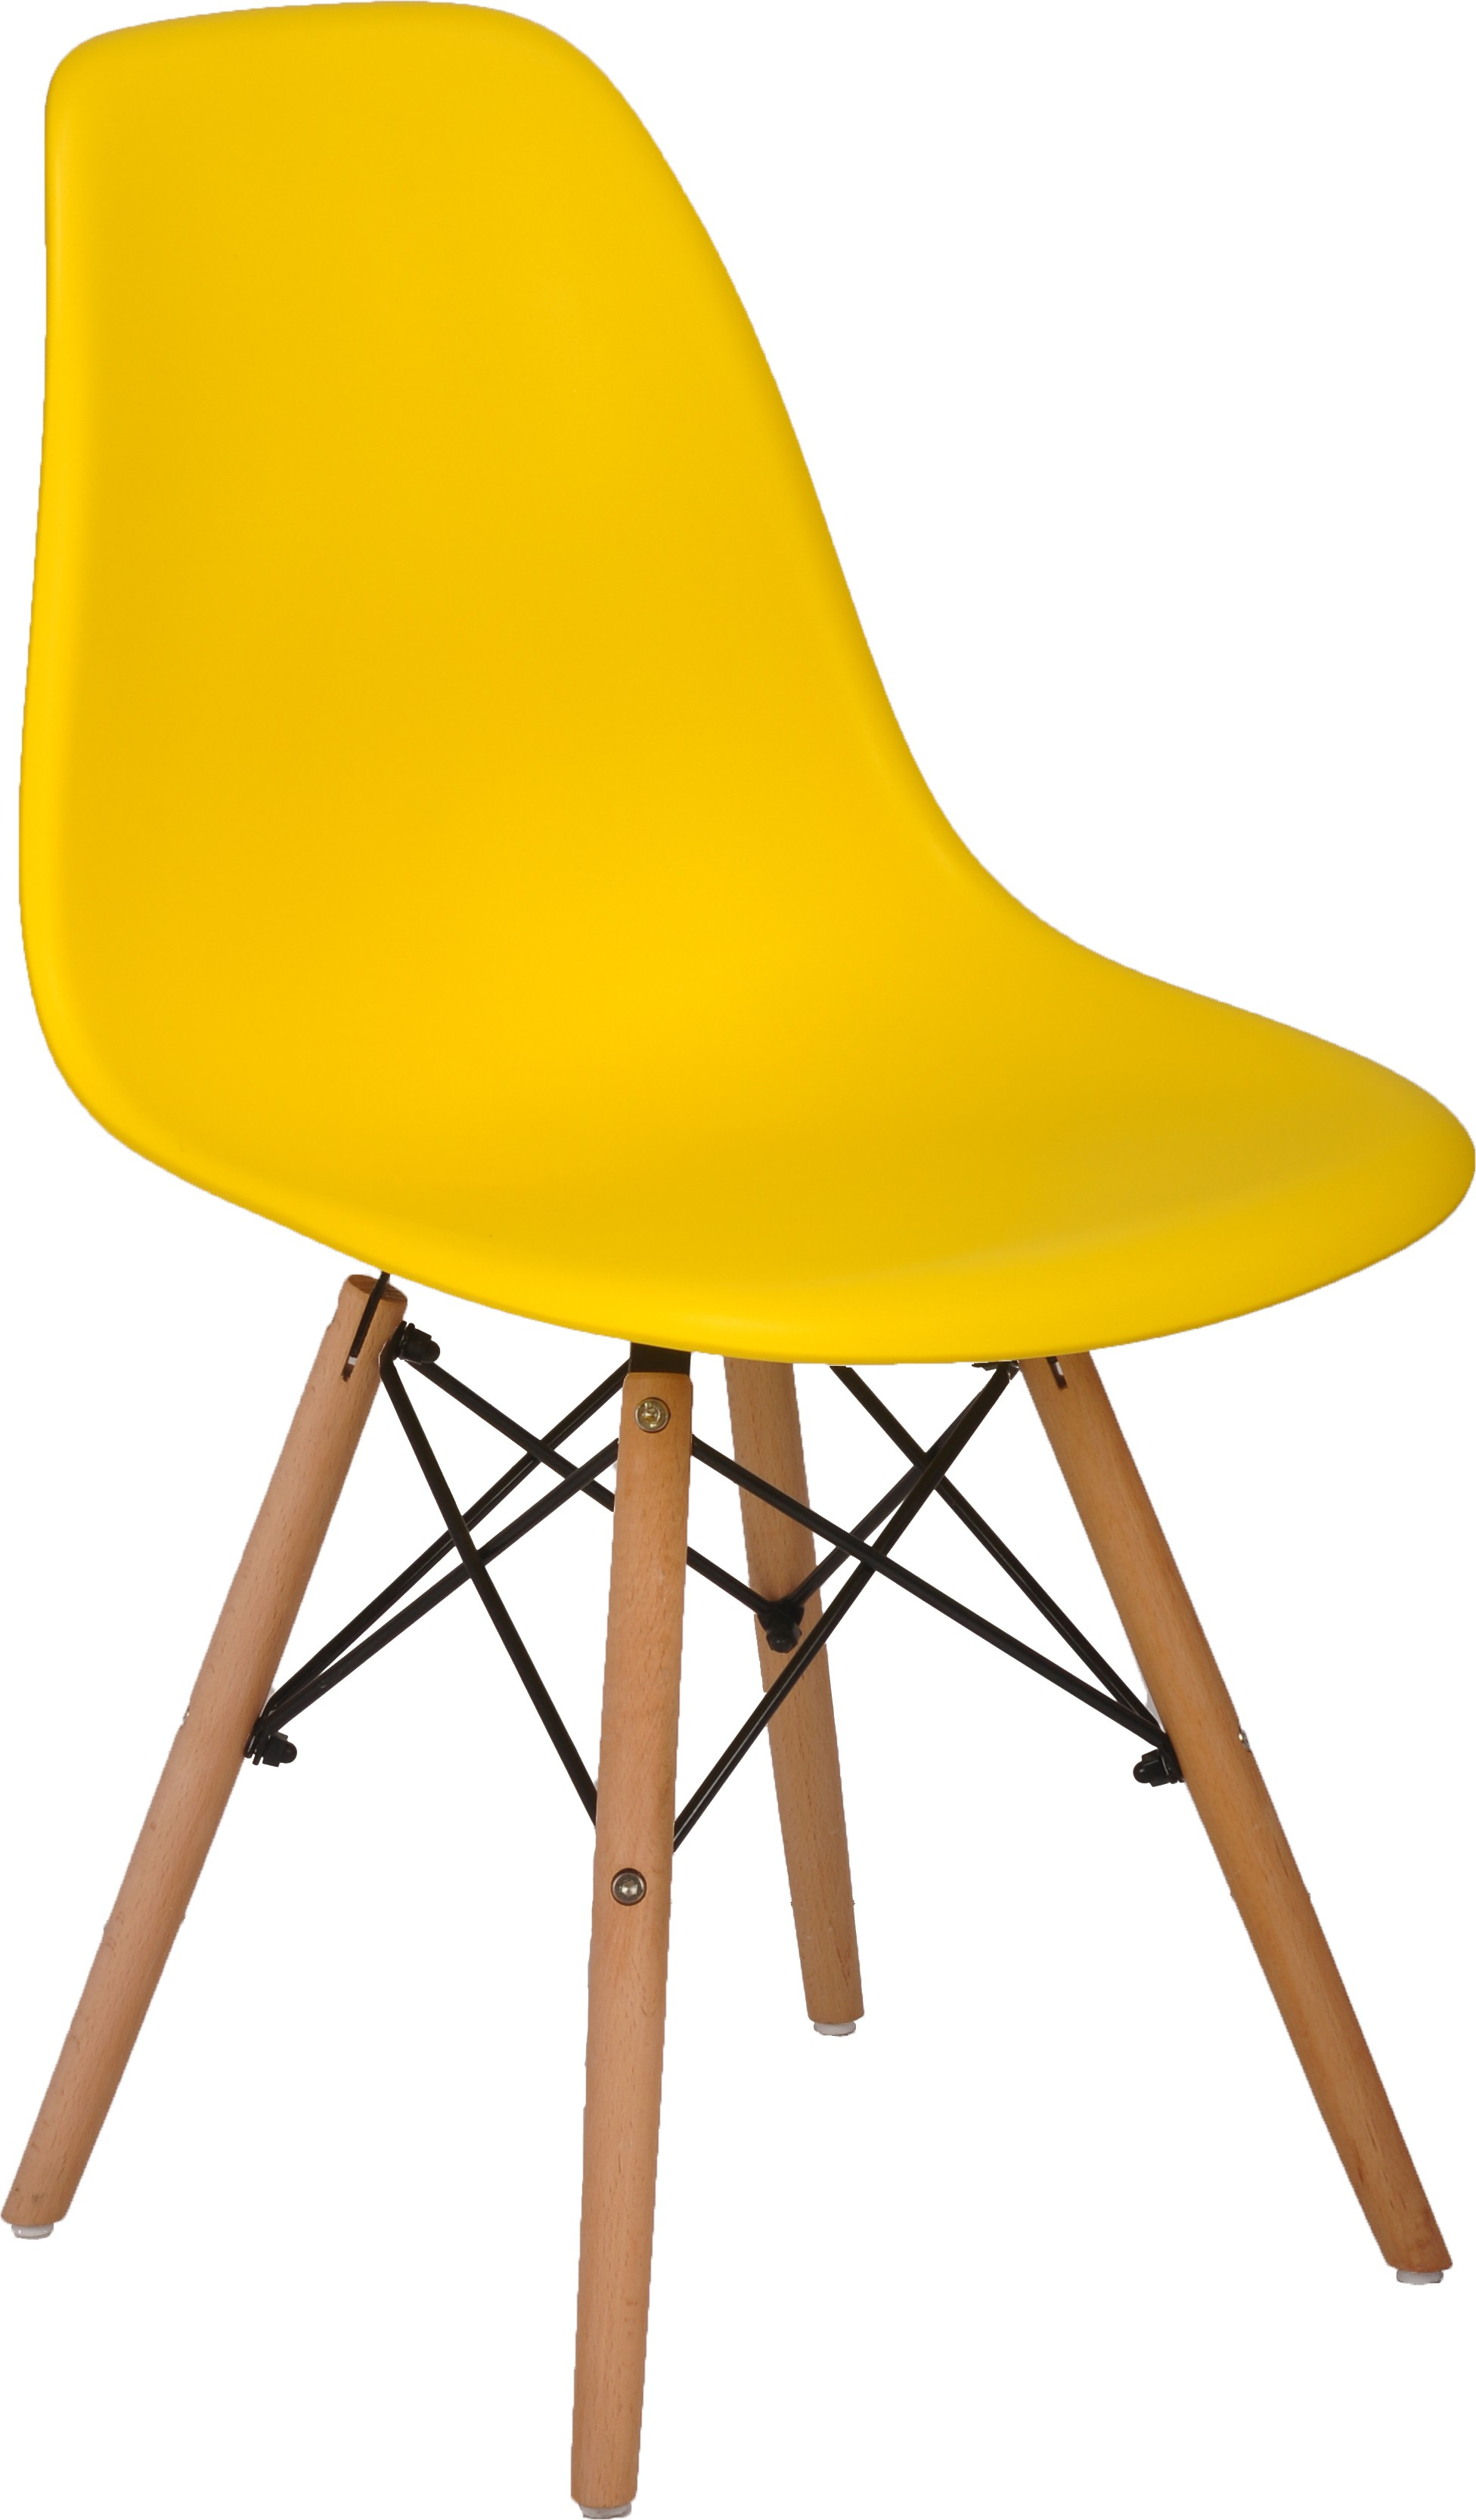 View Bharat Furniture Cloud Plastic Living Room Chair(Finish Color - Yellow) Furniture (Bharat Furniture)